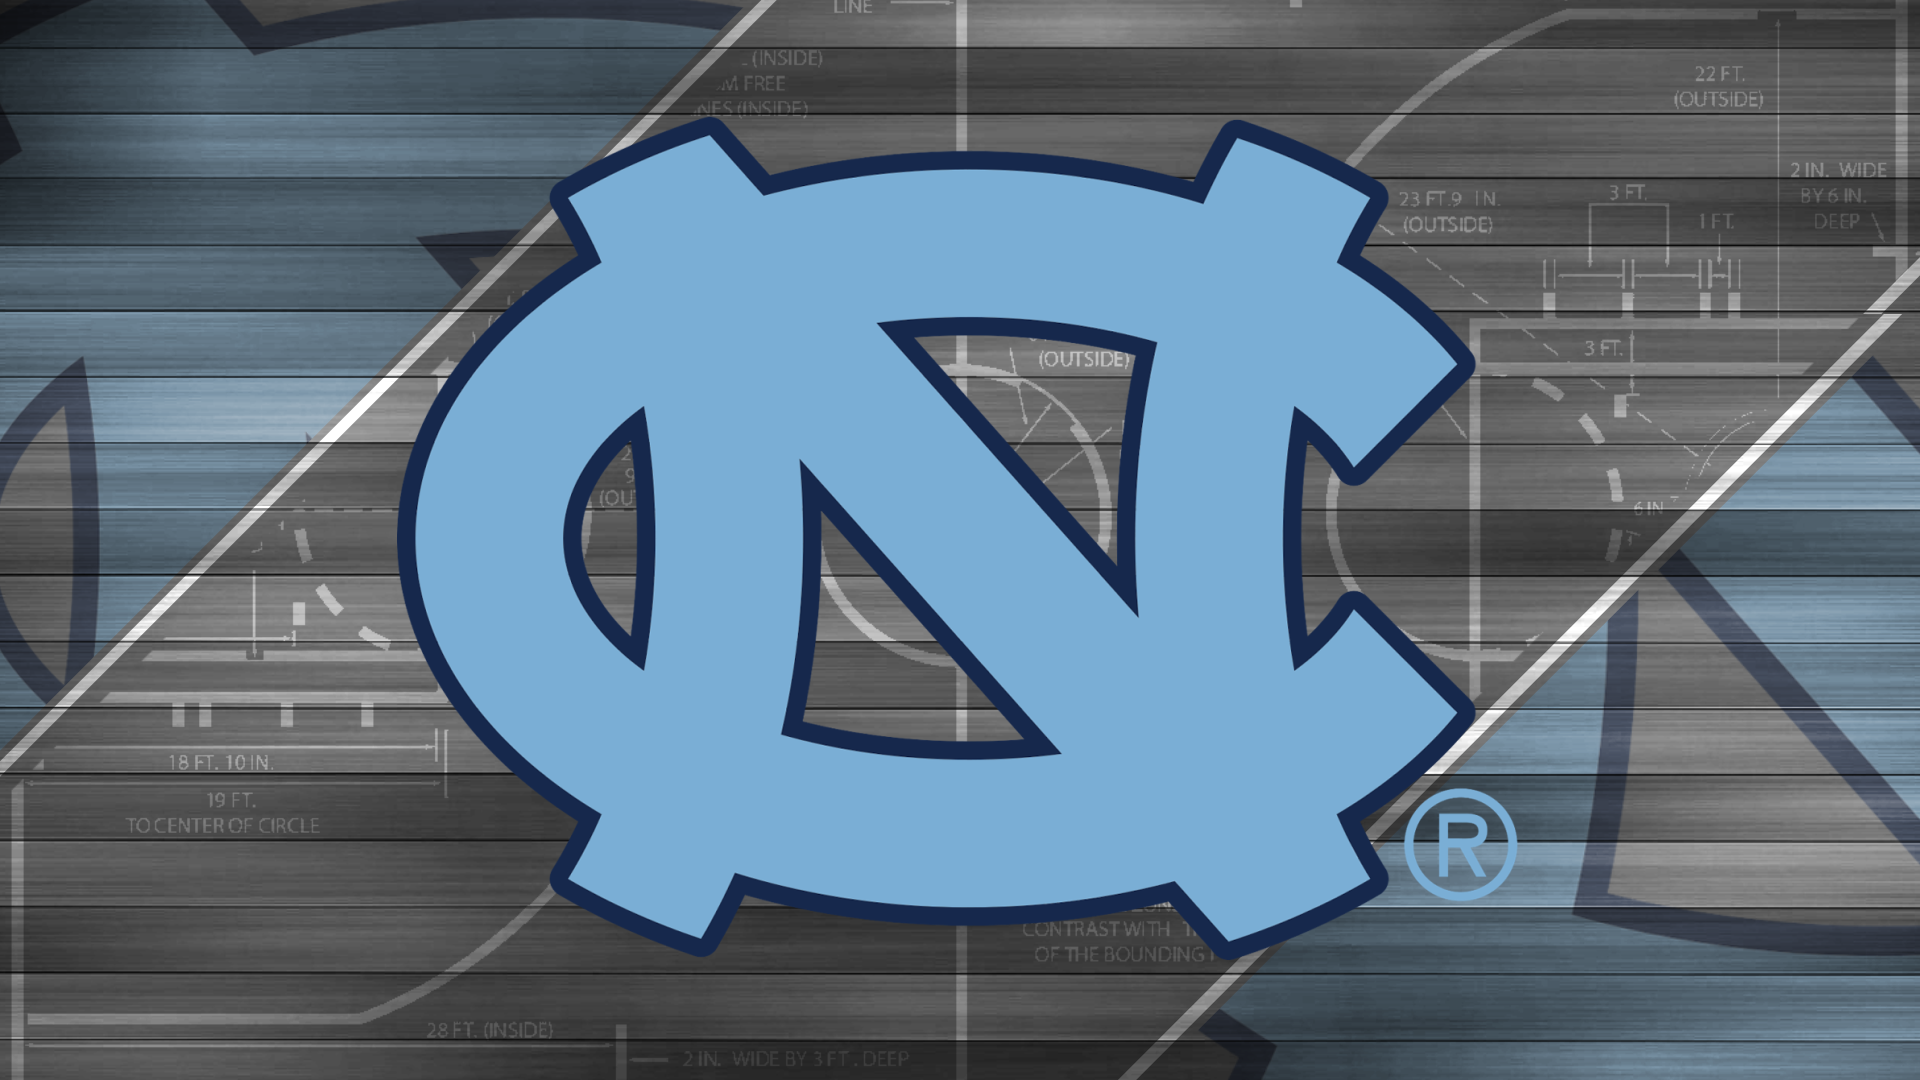 Pin By Patrick Ingle On Funny North Carolina Tar Heels Basketball Tarheels Basketball Basketball Wallpaper